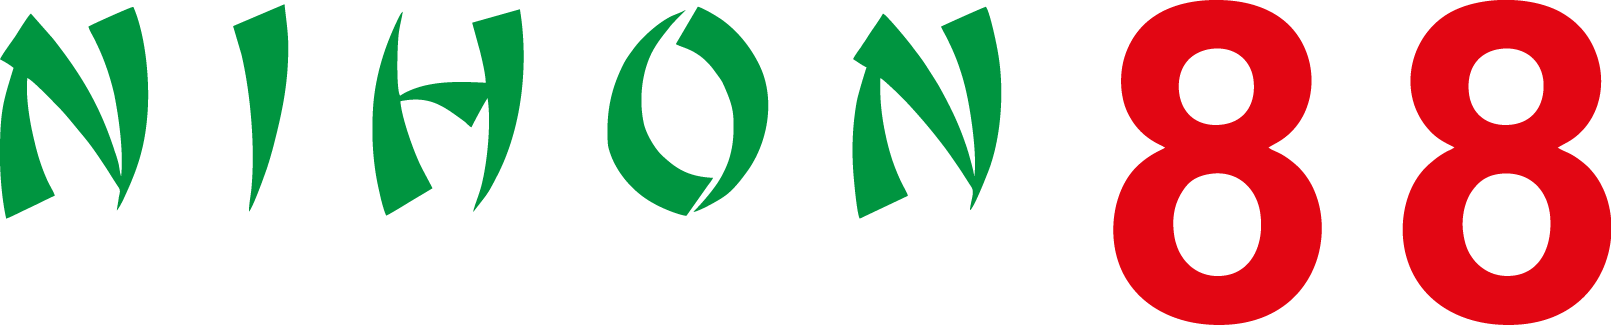 Nihon 88 | All you can eat Leeuwarden